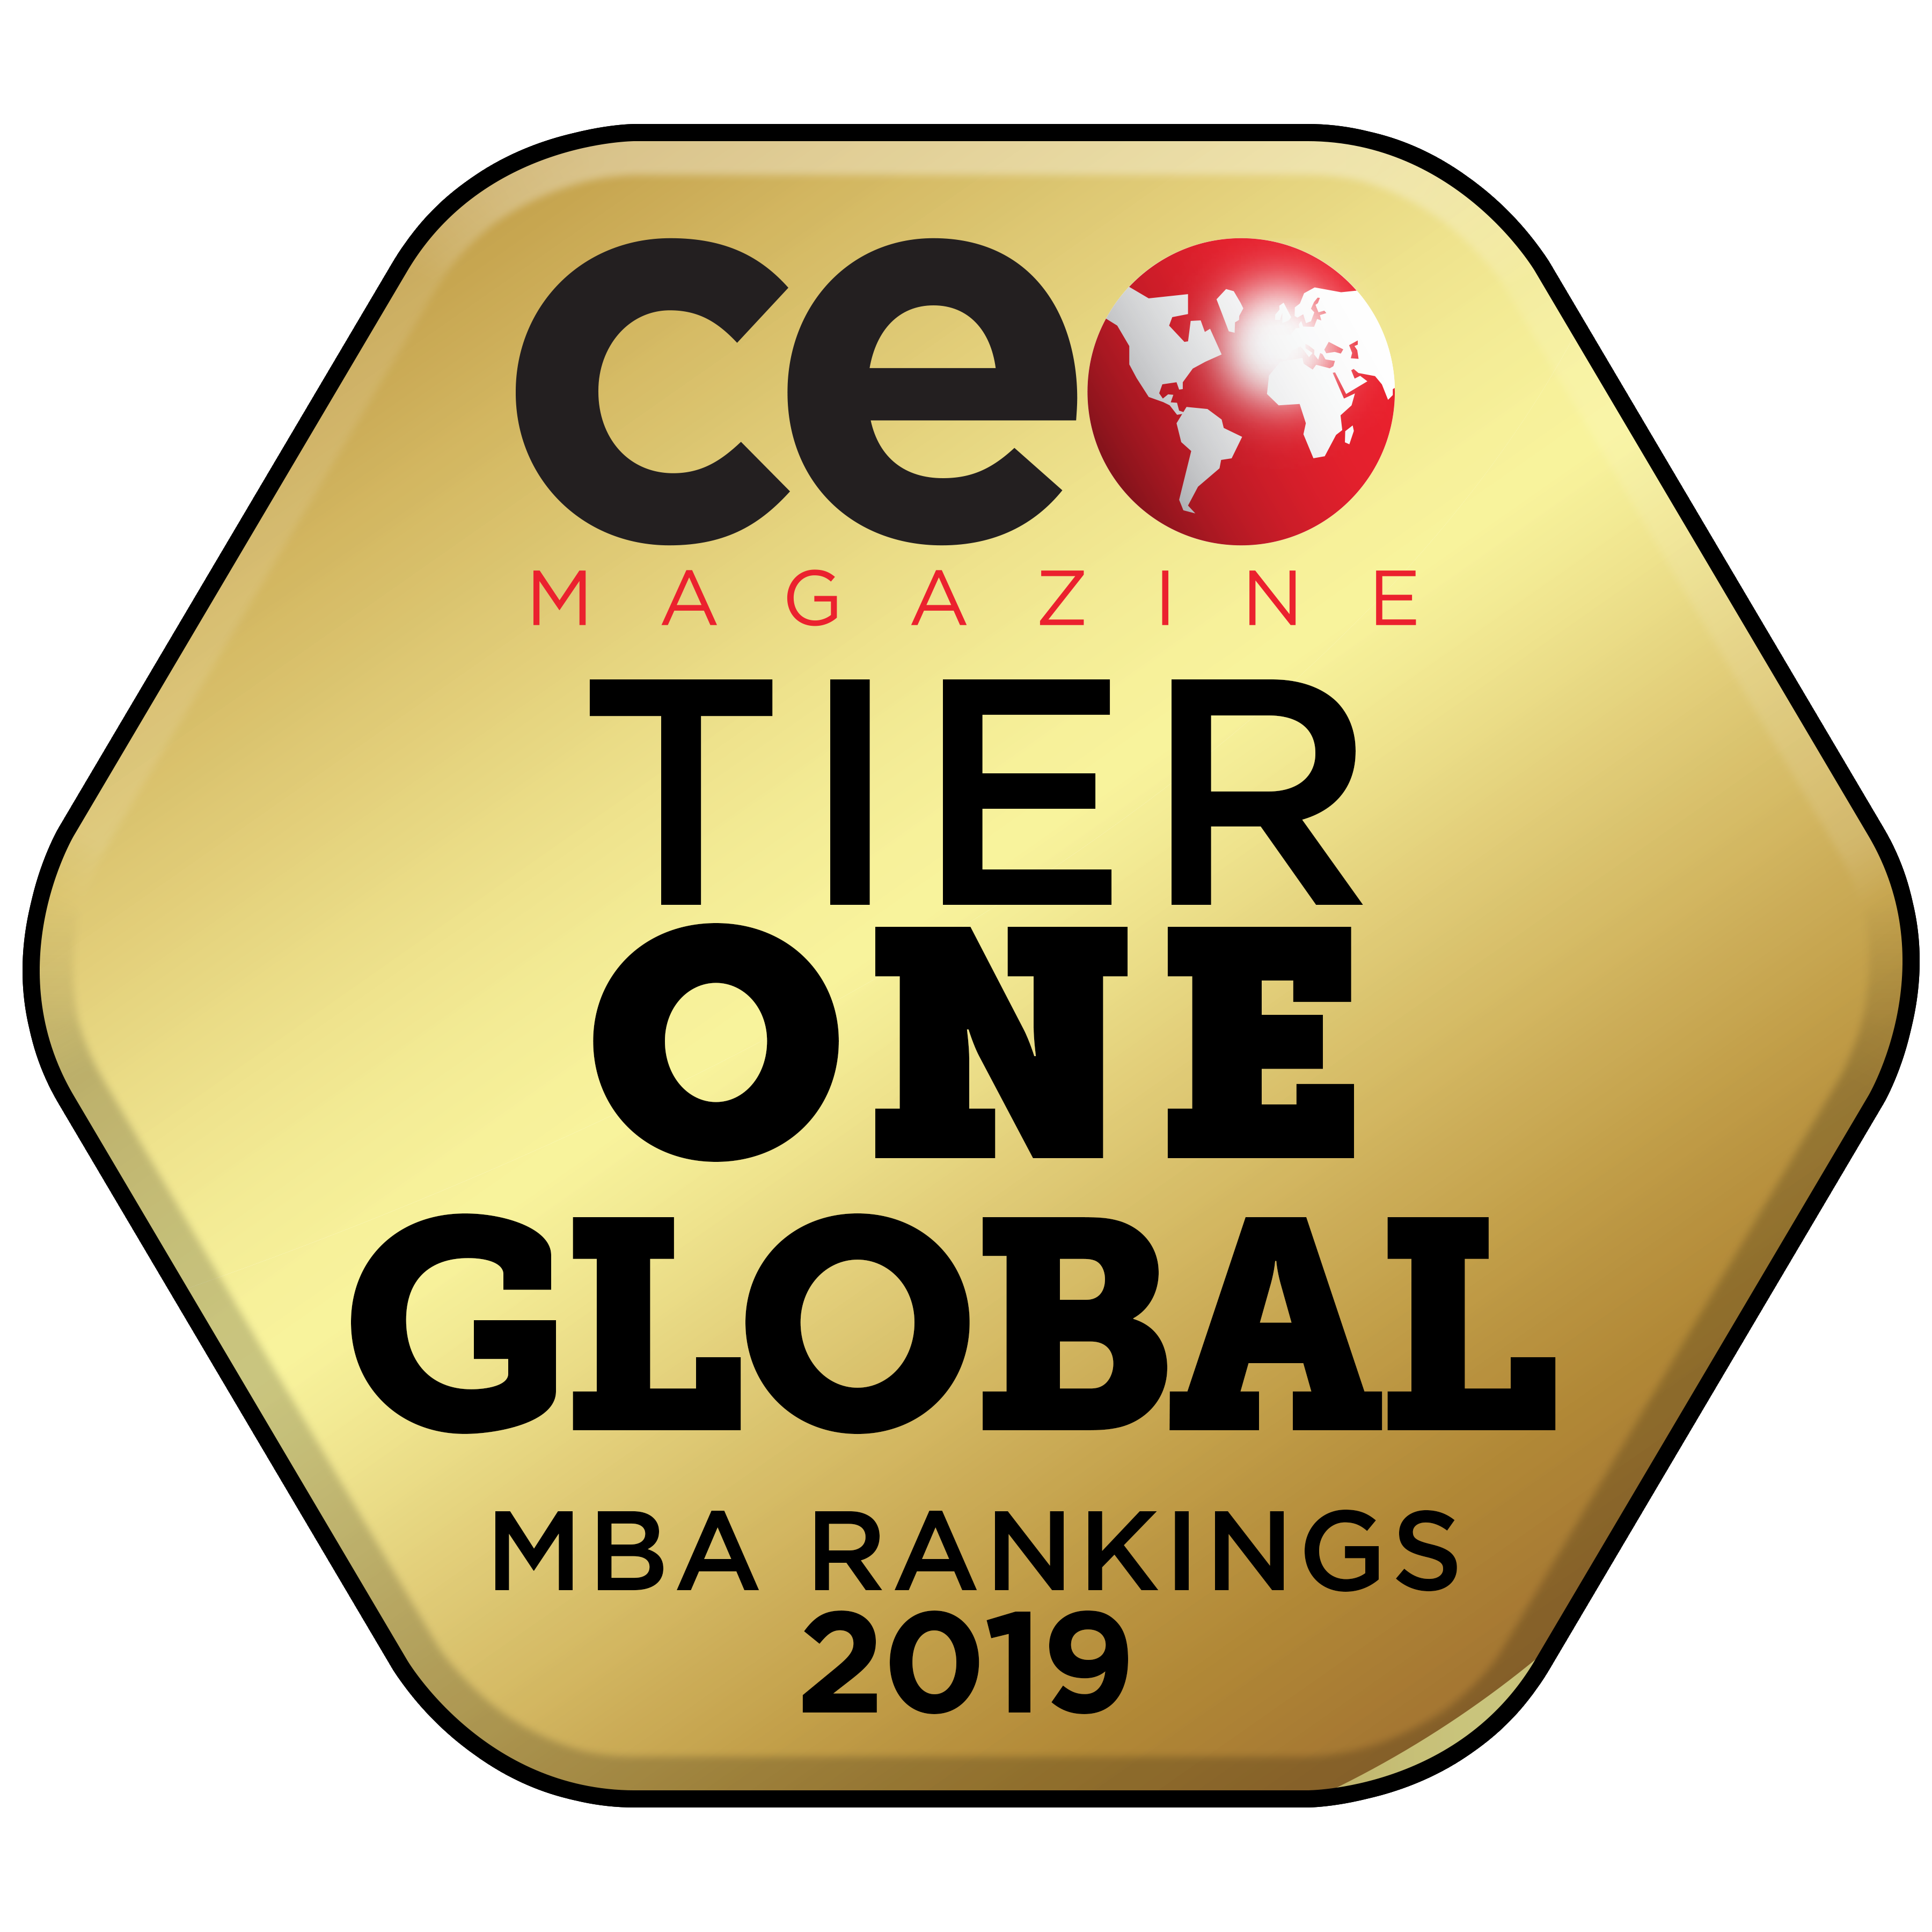 CEO Magazine Global MBA Rankings 2019